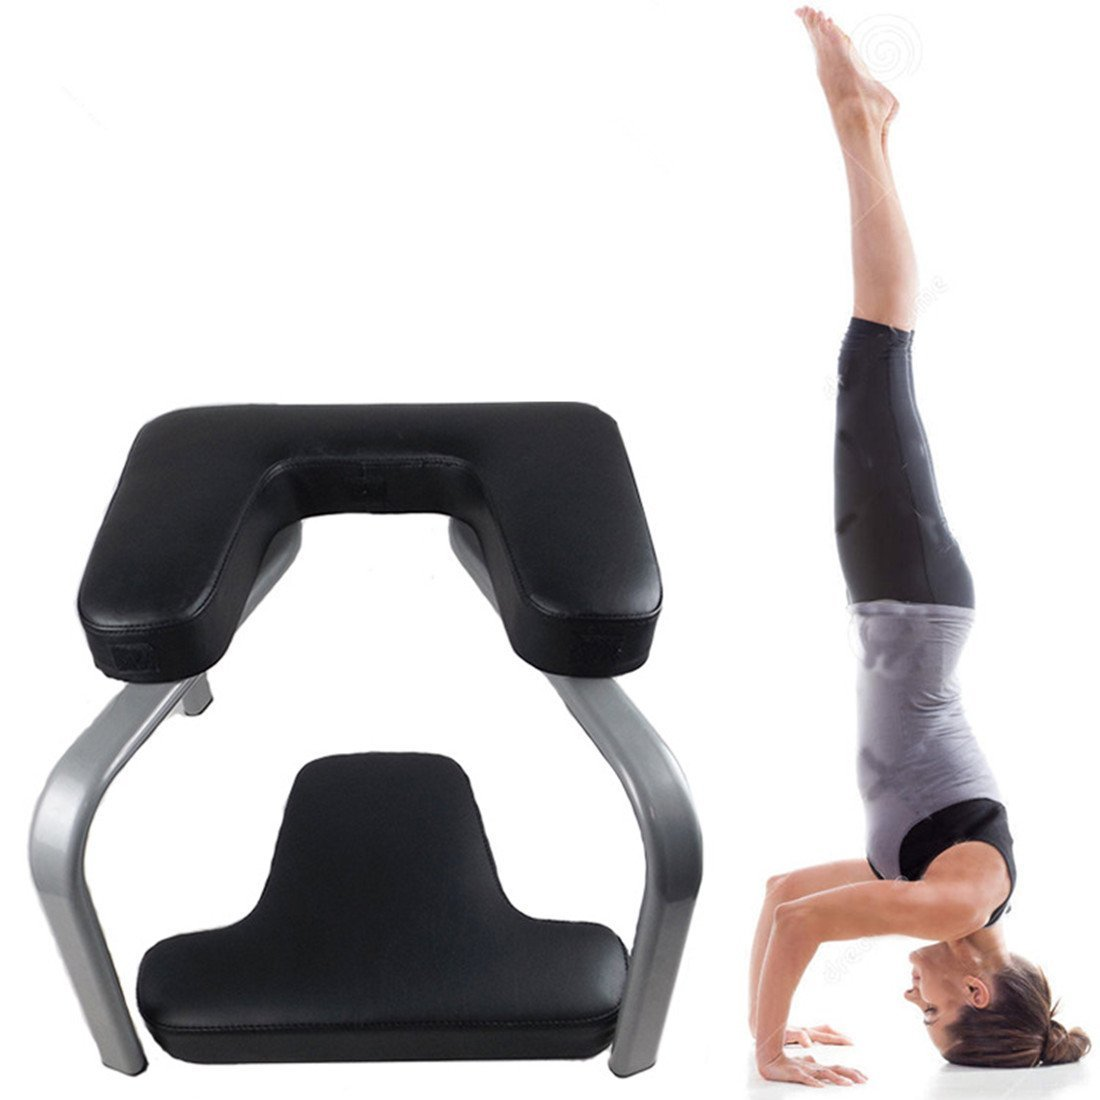 Ranbo yoga headstand exercise bench/body lift inverted training/fitness chair and Inversion workout the balanced body headstand bench …